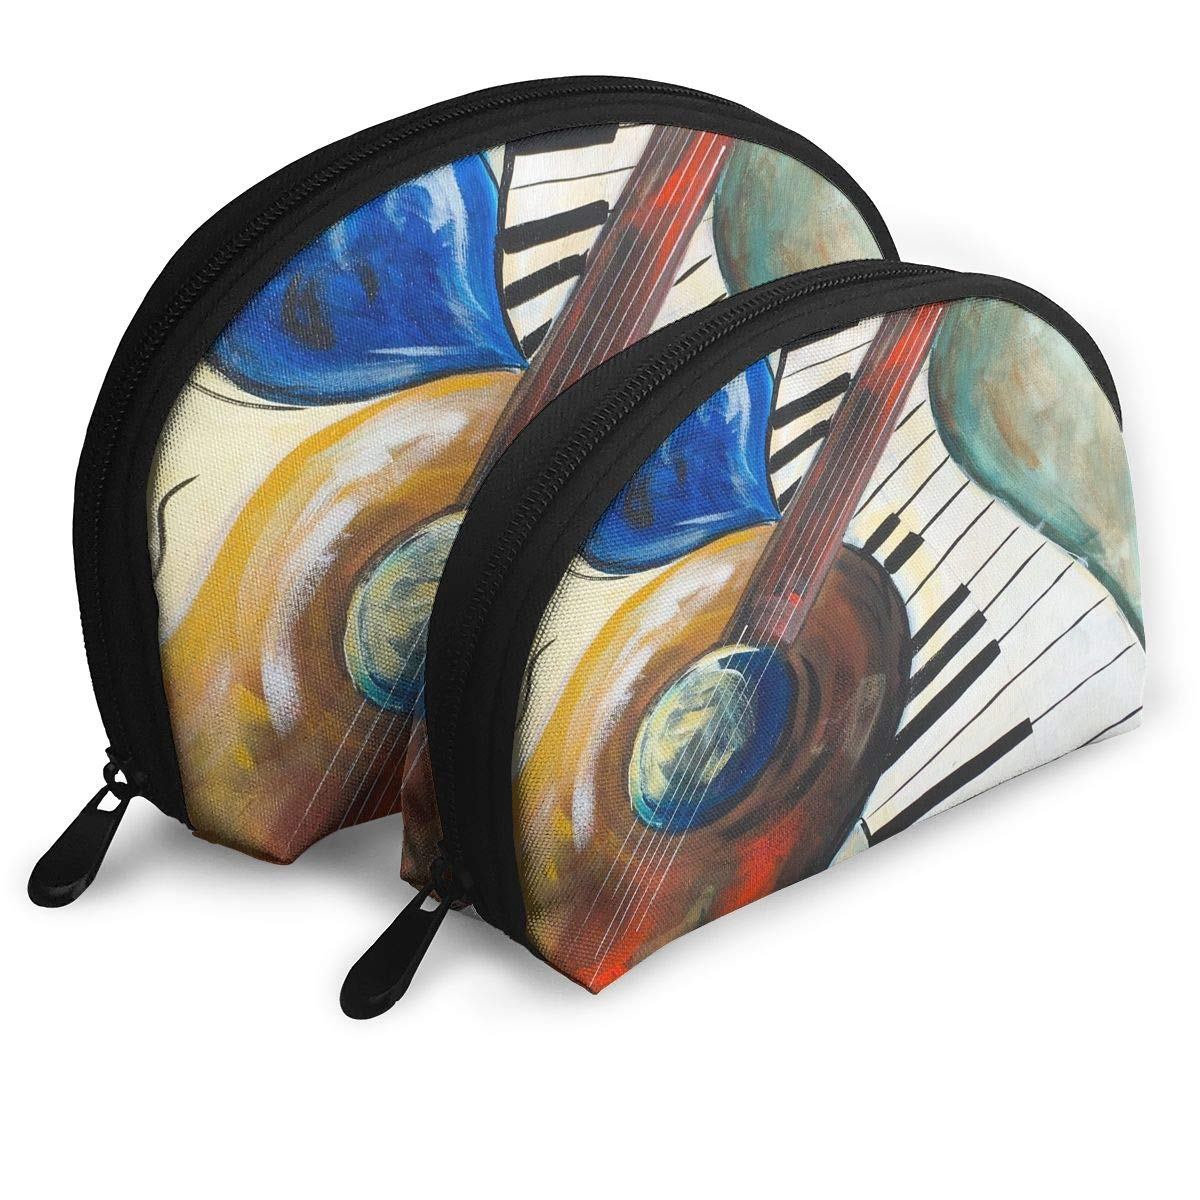 Pouch Zipper Toiletry Organizer Travel Makeup Clutch Bag Abstract Musical Notes Piano Portable Bags Clutch Pouch Storage Bags